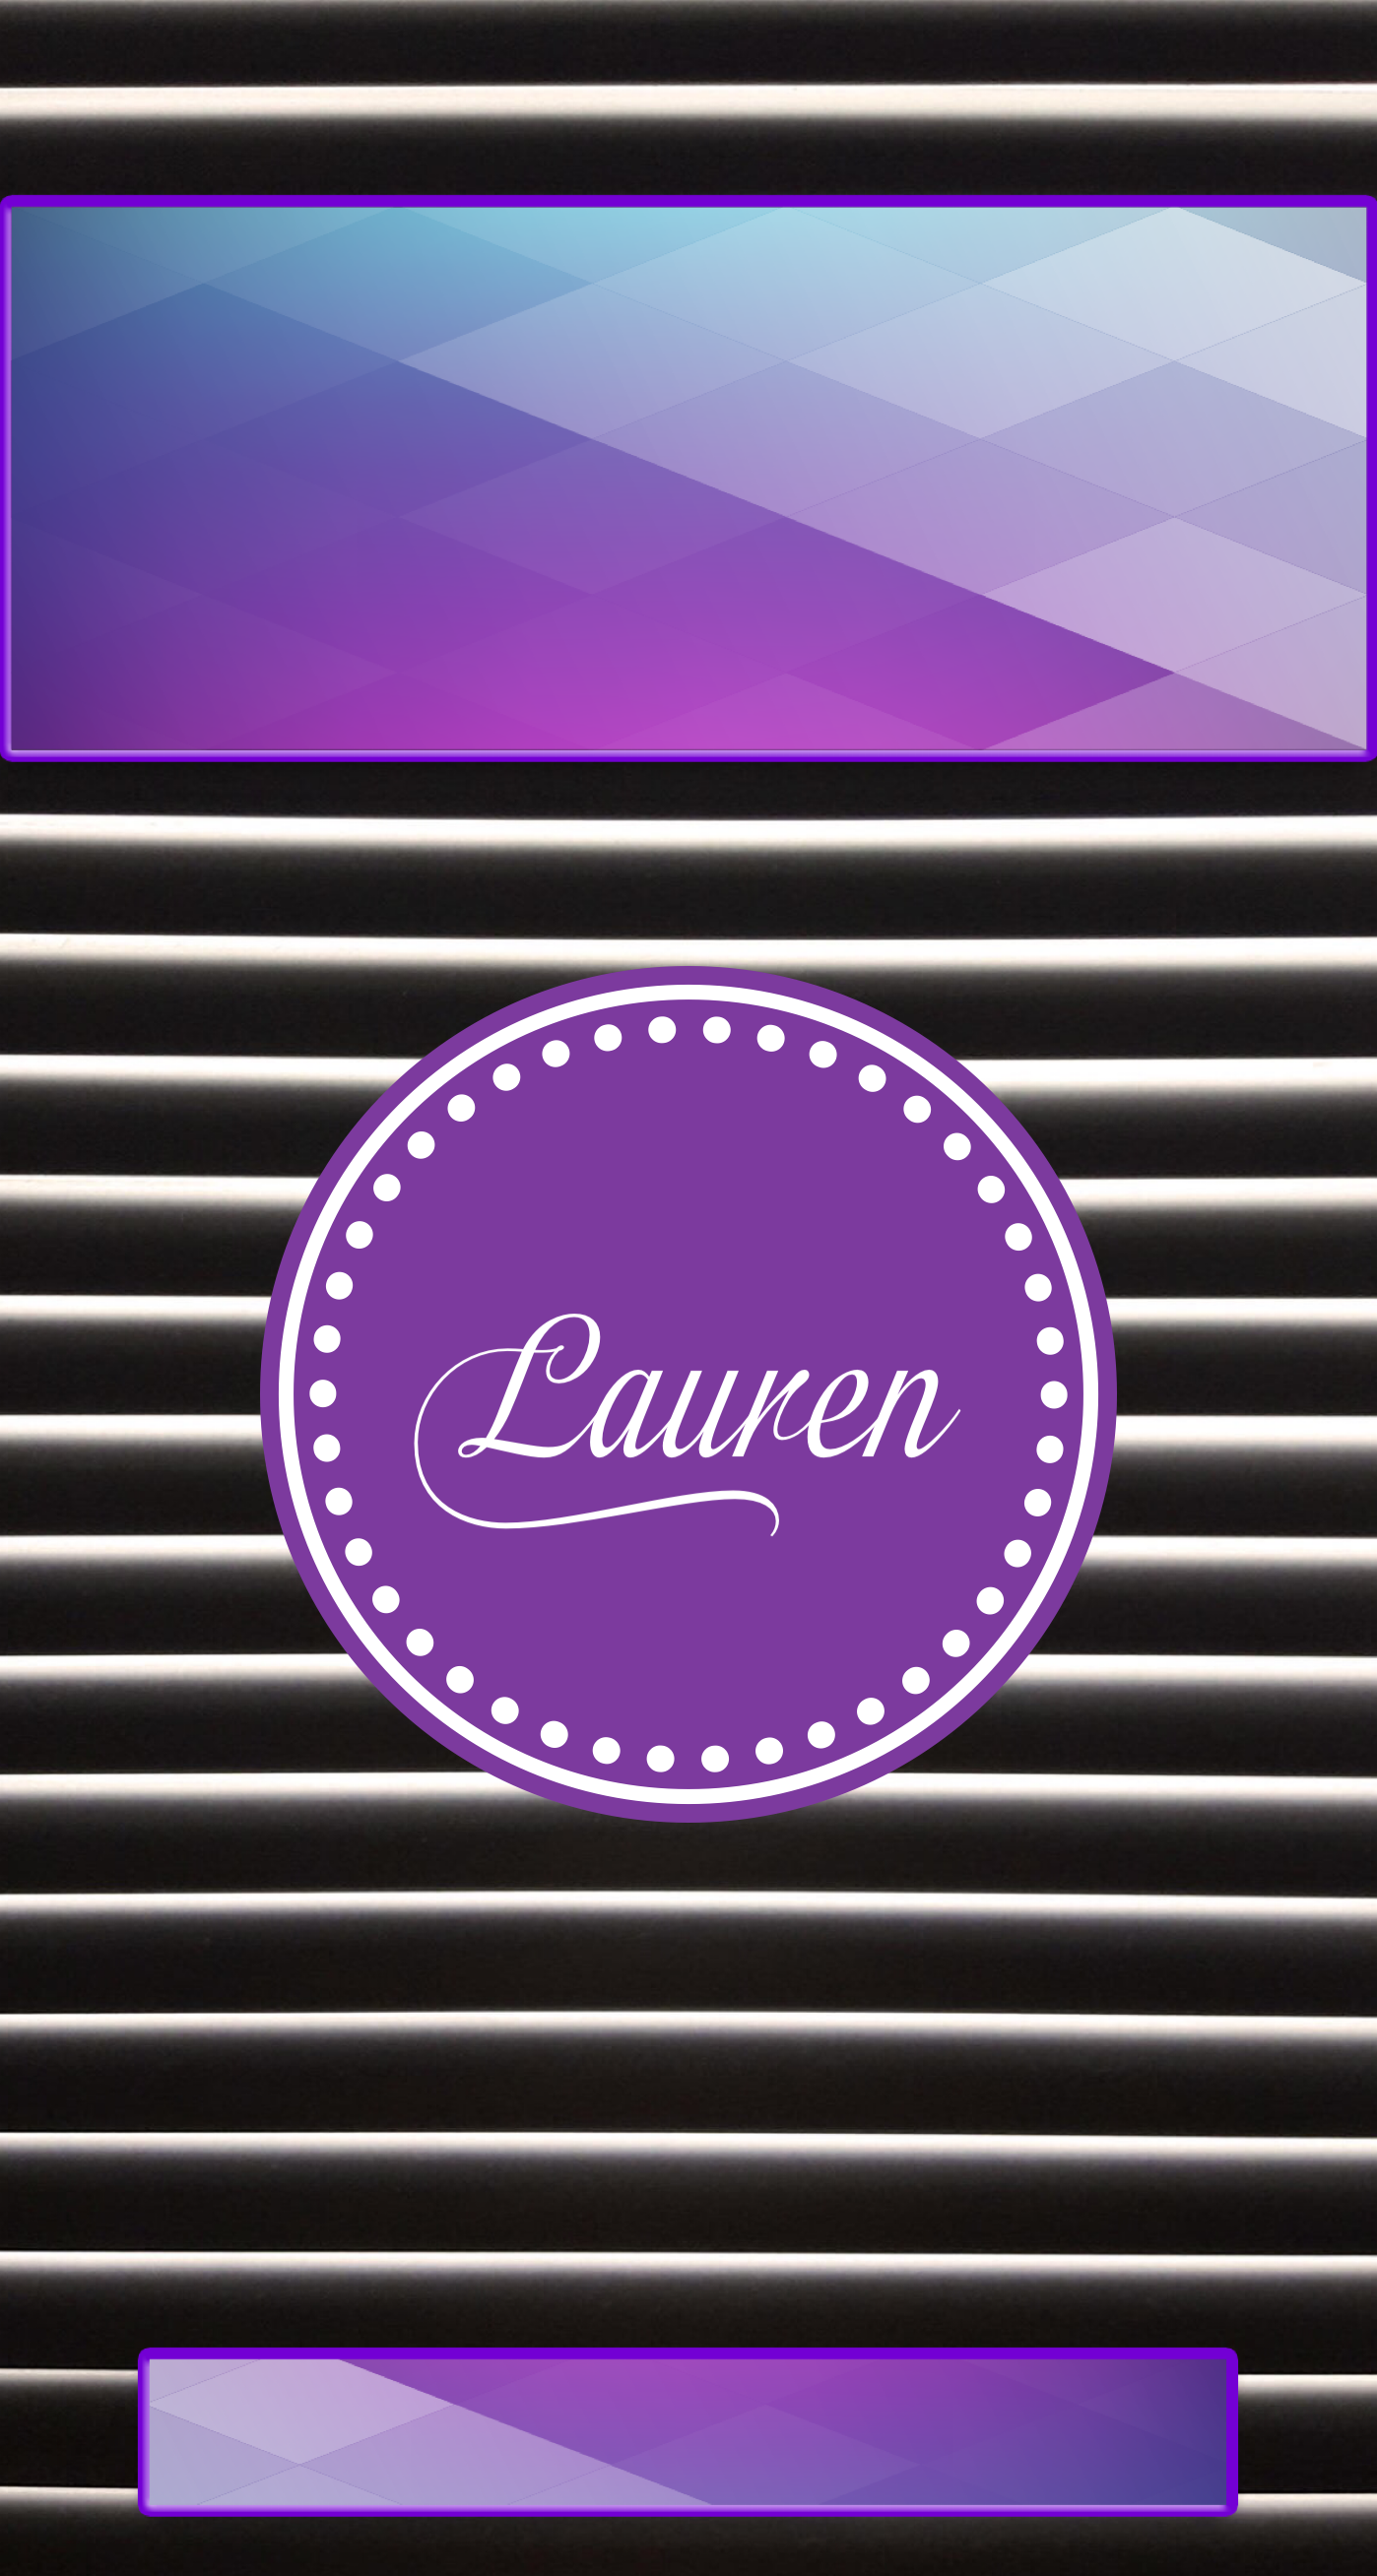 Cool Backgrounds That Say Your Name